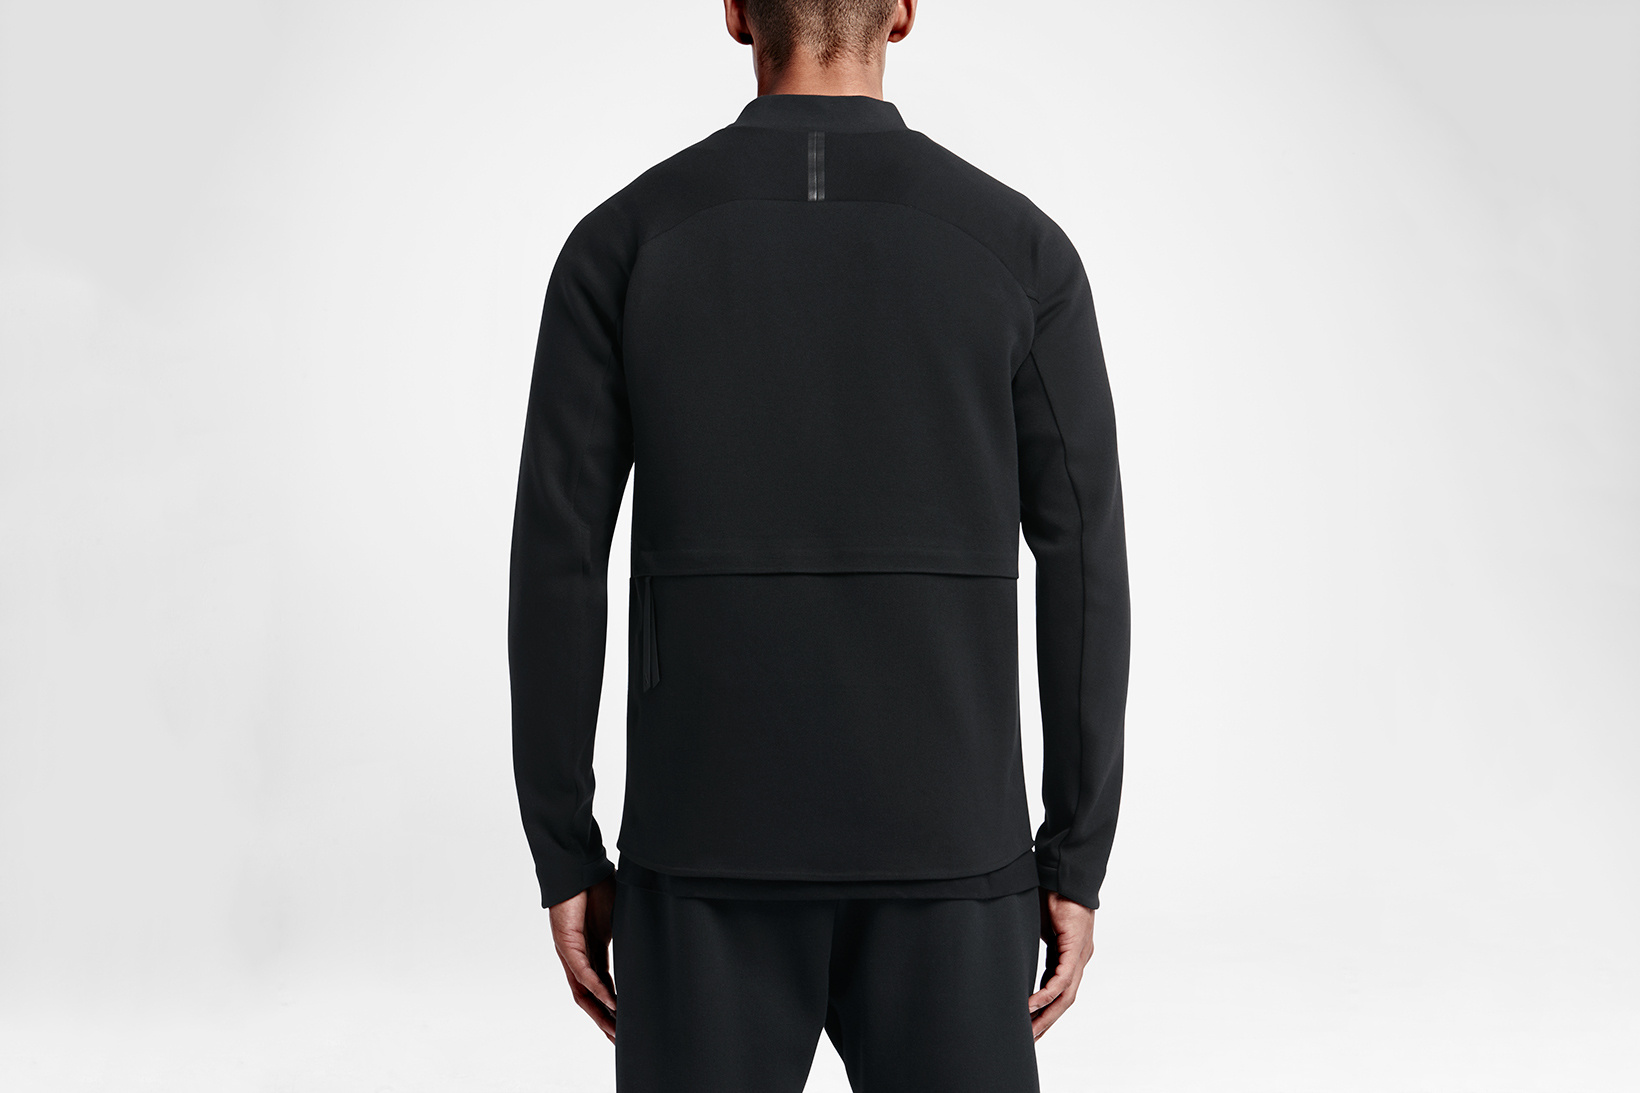 nikelab-transform-jacket-2